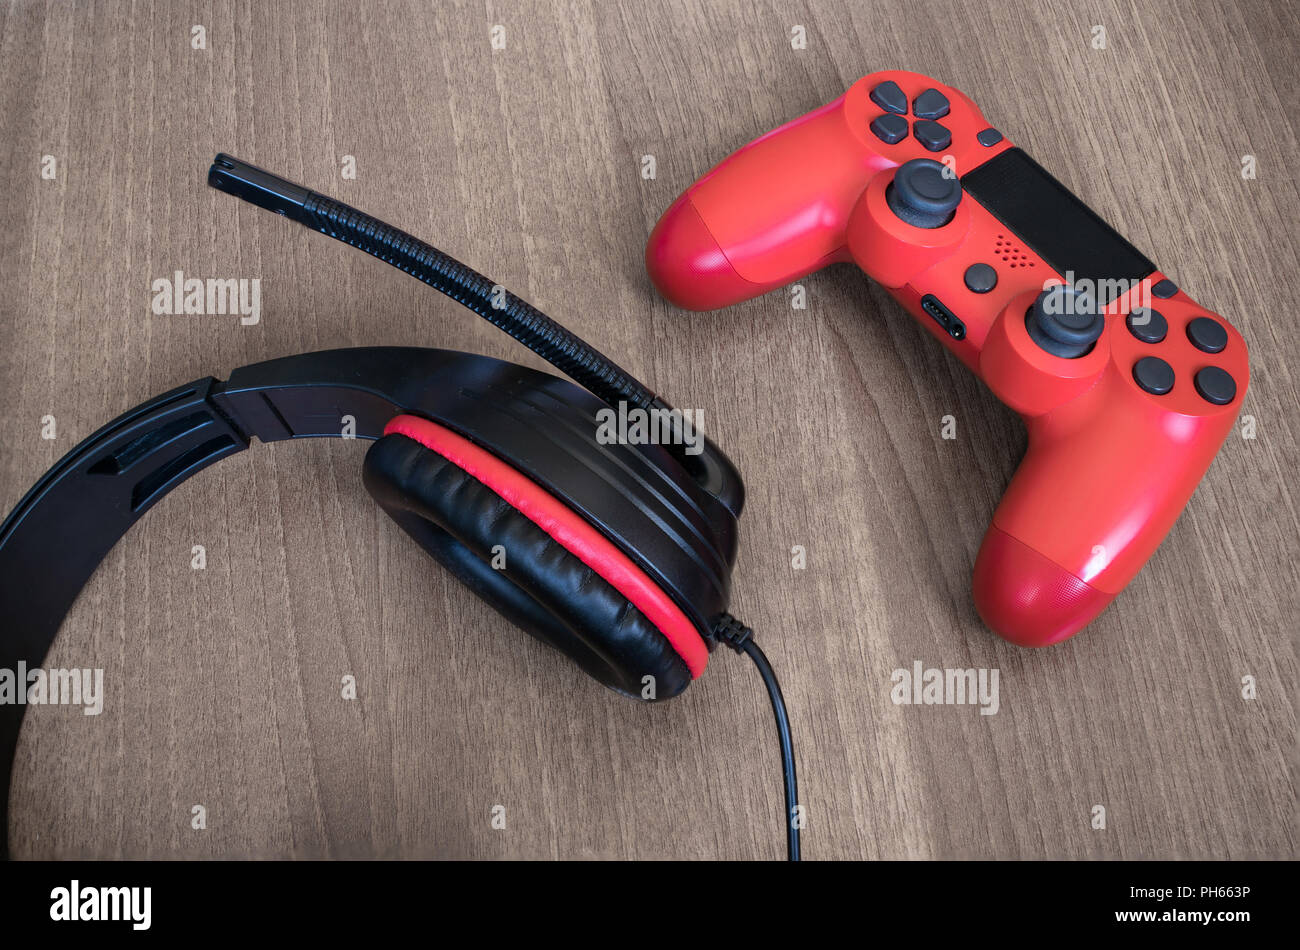 Headset and red video game controller. - Stock Image